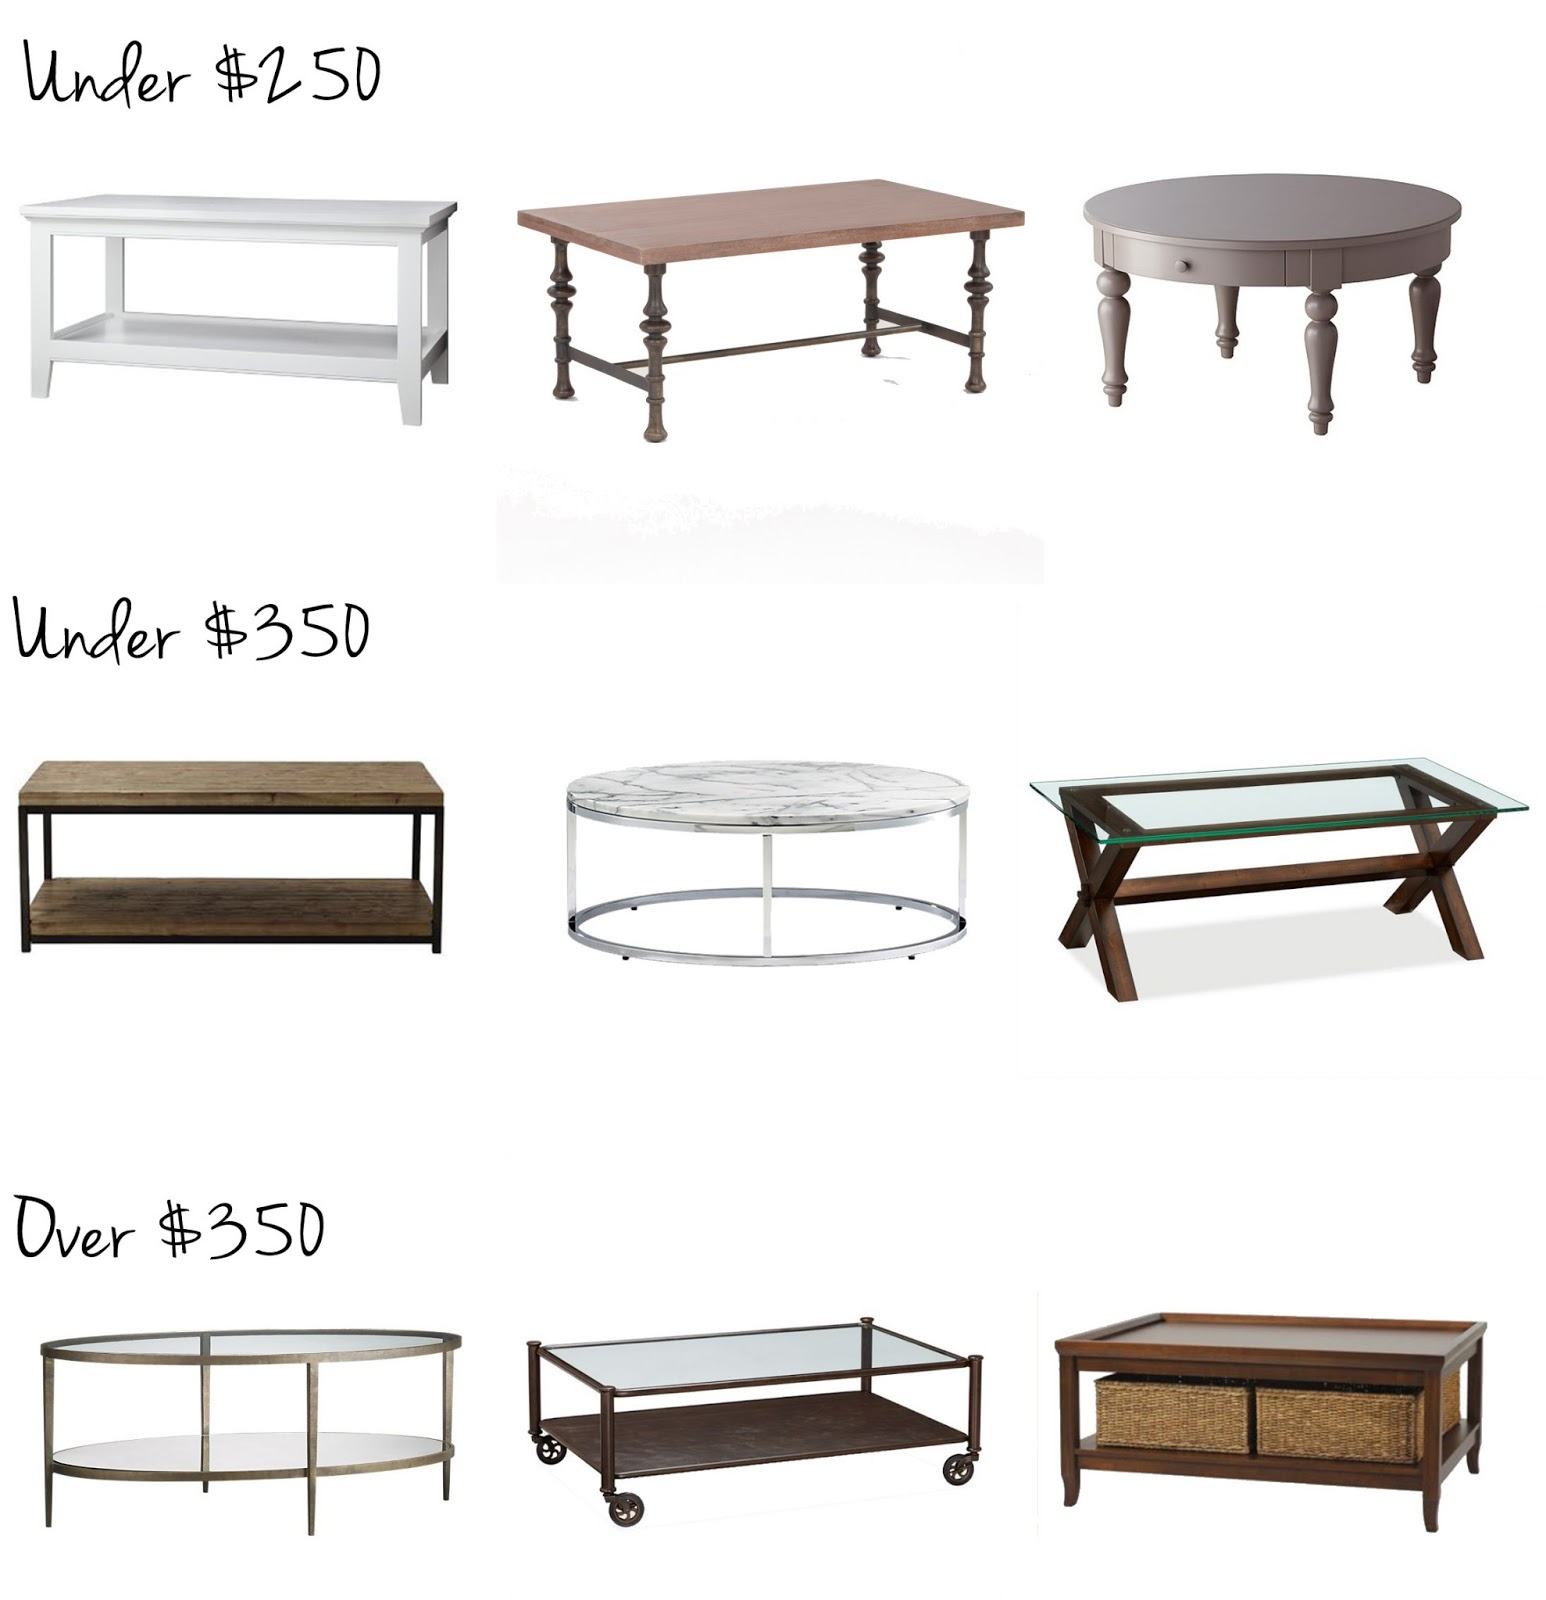 Clairemont Coffee Table Olive Lane Coffee Tables For Every Budget